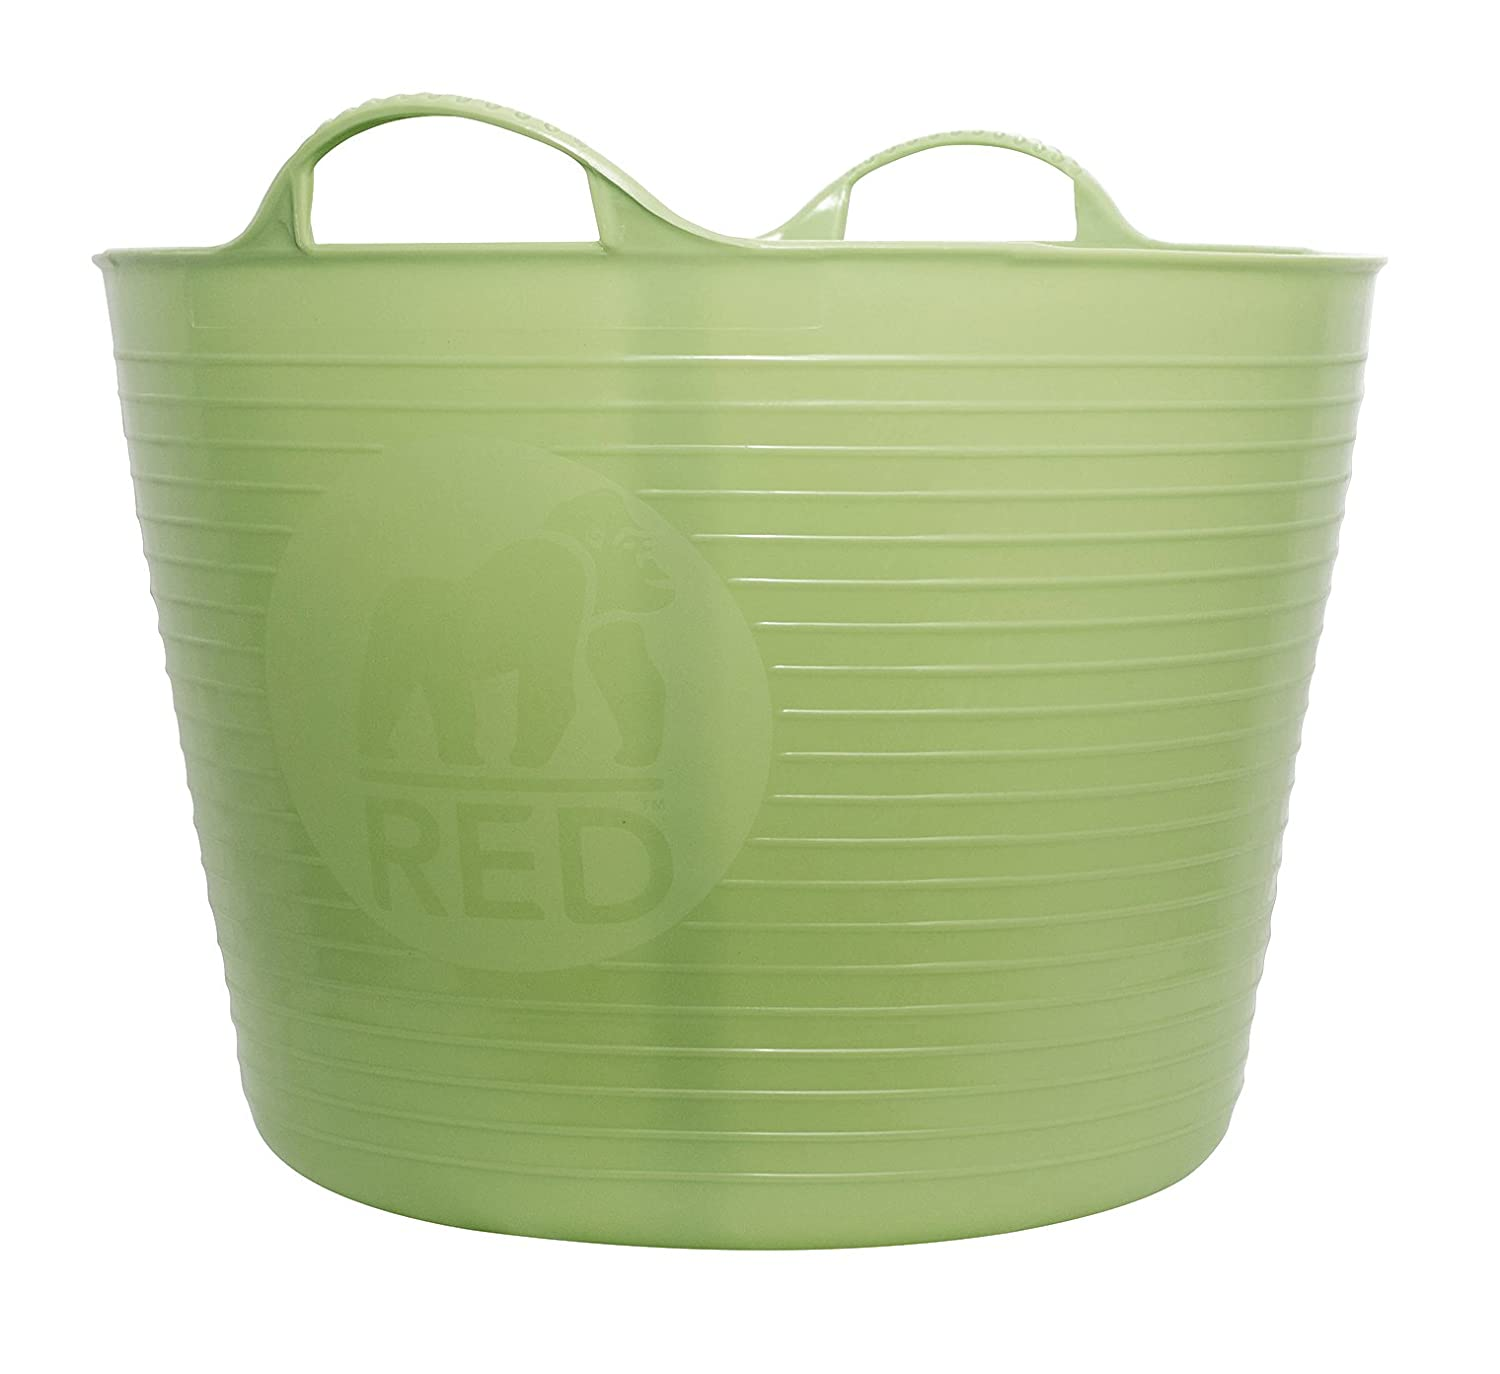 TubTrug SP42PST Large Pistacio Flex Tub, 38 Liter Arett Sales - LG